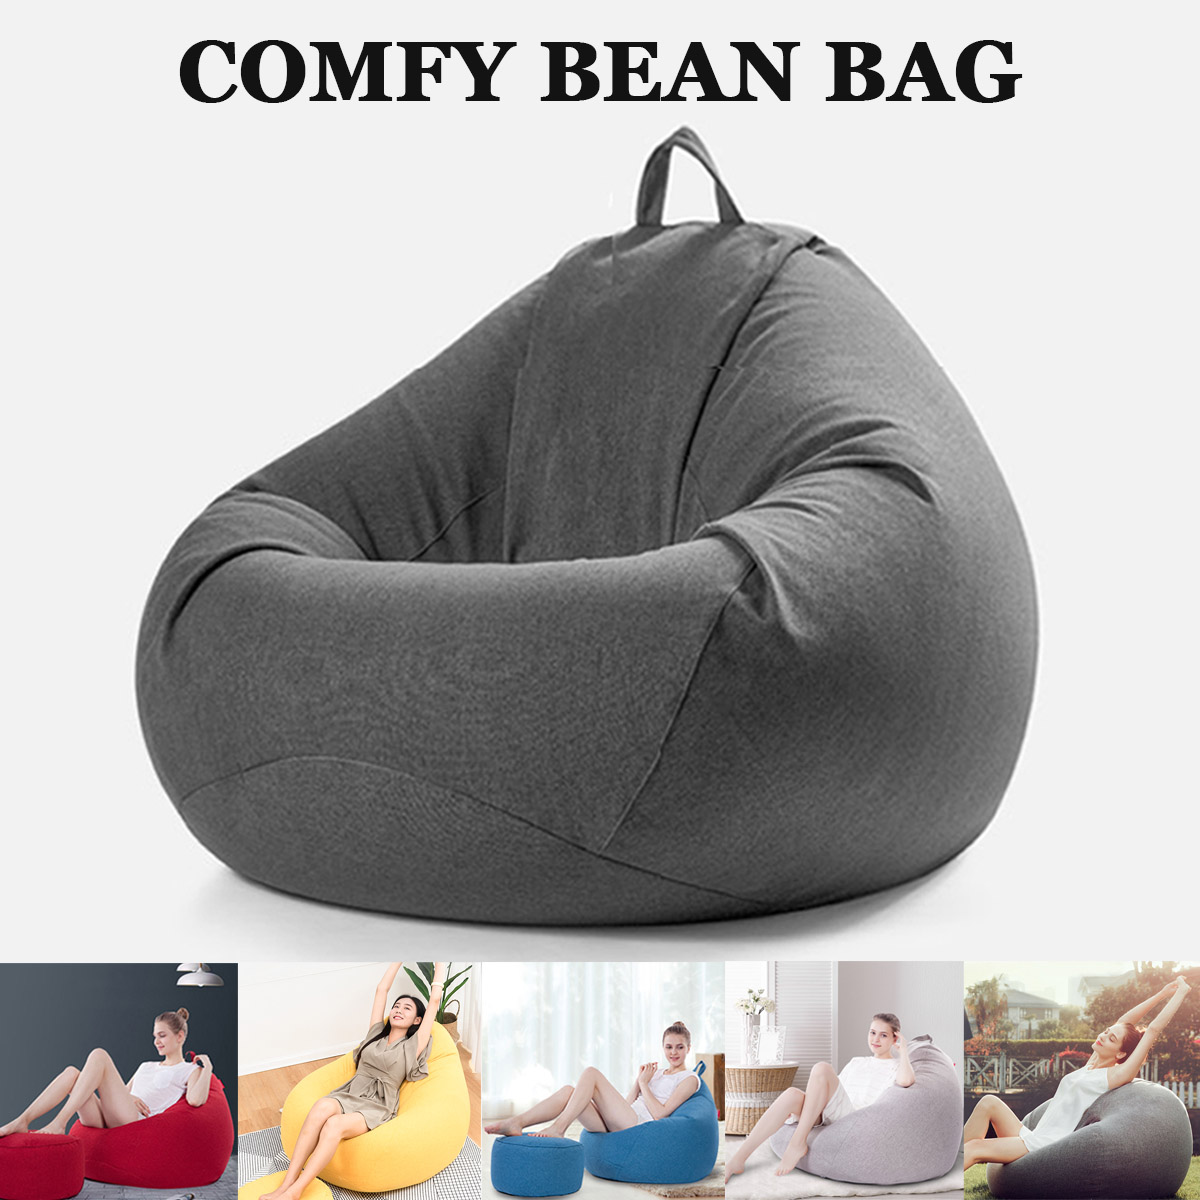 Baby Furniture Baby Seats & Sofa 2018 New Bean Bag In Living Room Luxury Magic Seat Zac Shell Comfort Bean Bag Bed Cover Without Filler Outdoor Furniture Sofa In Many Styles